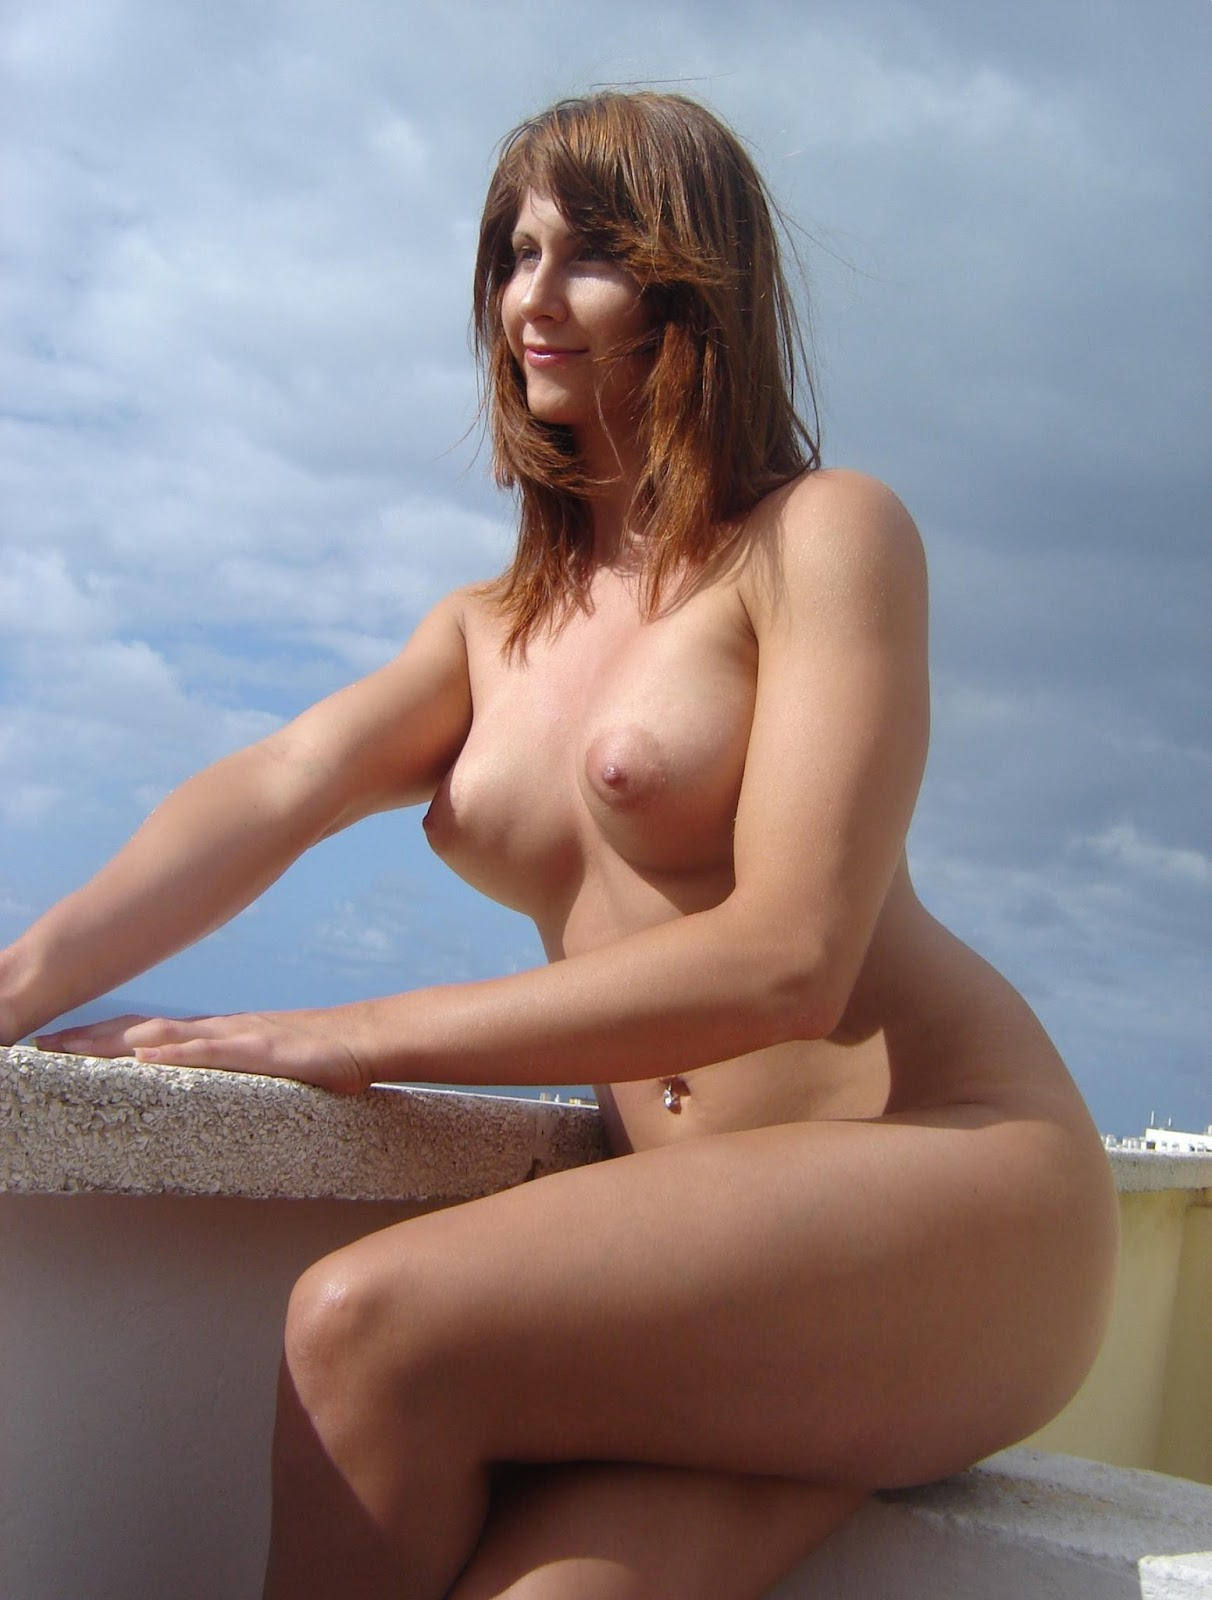 Videosex Hot Mature Women